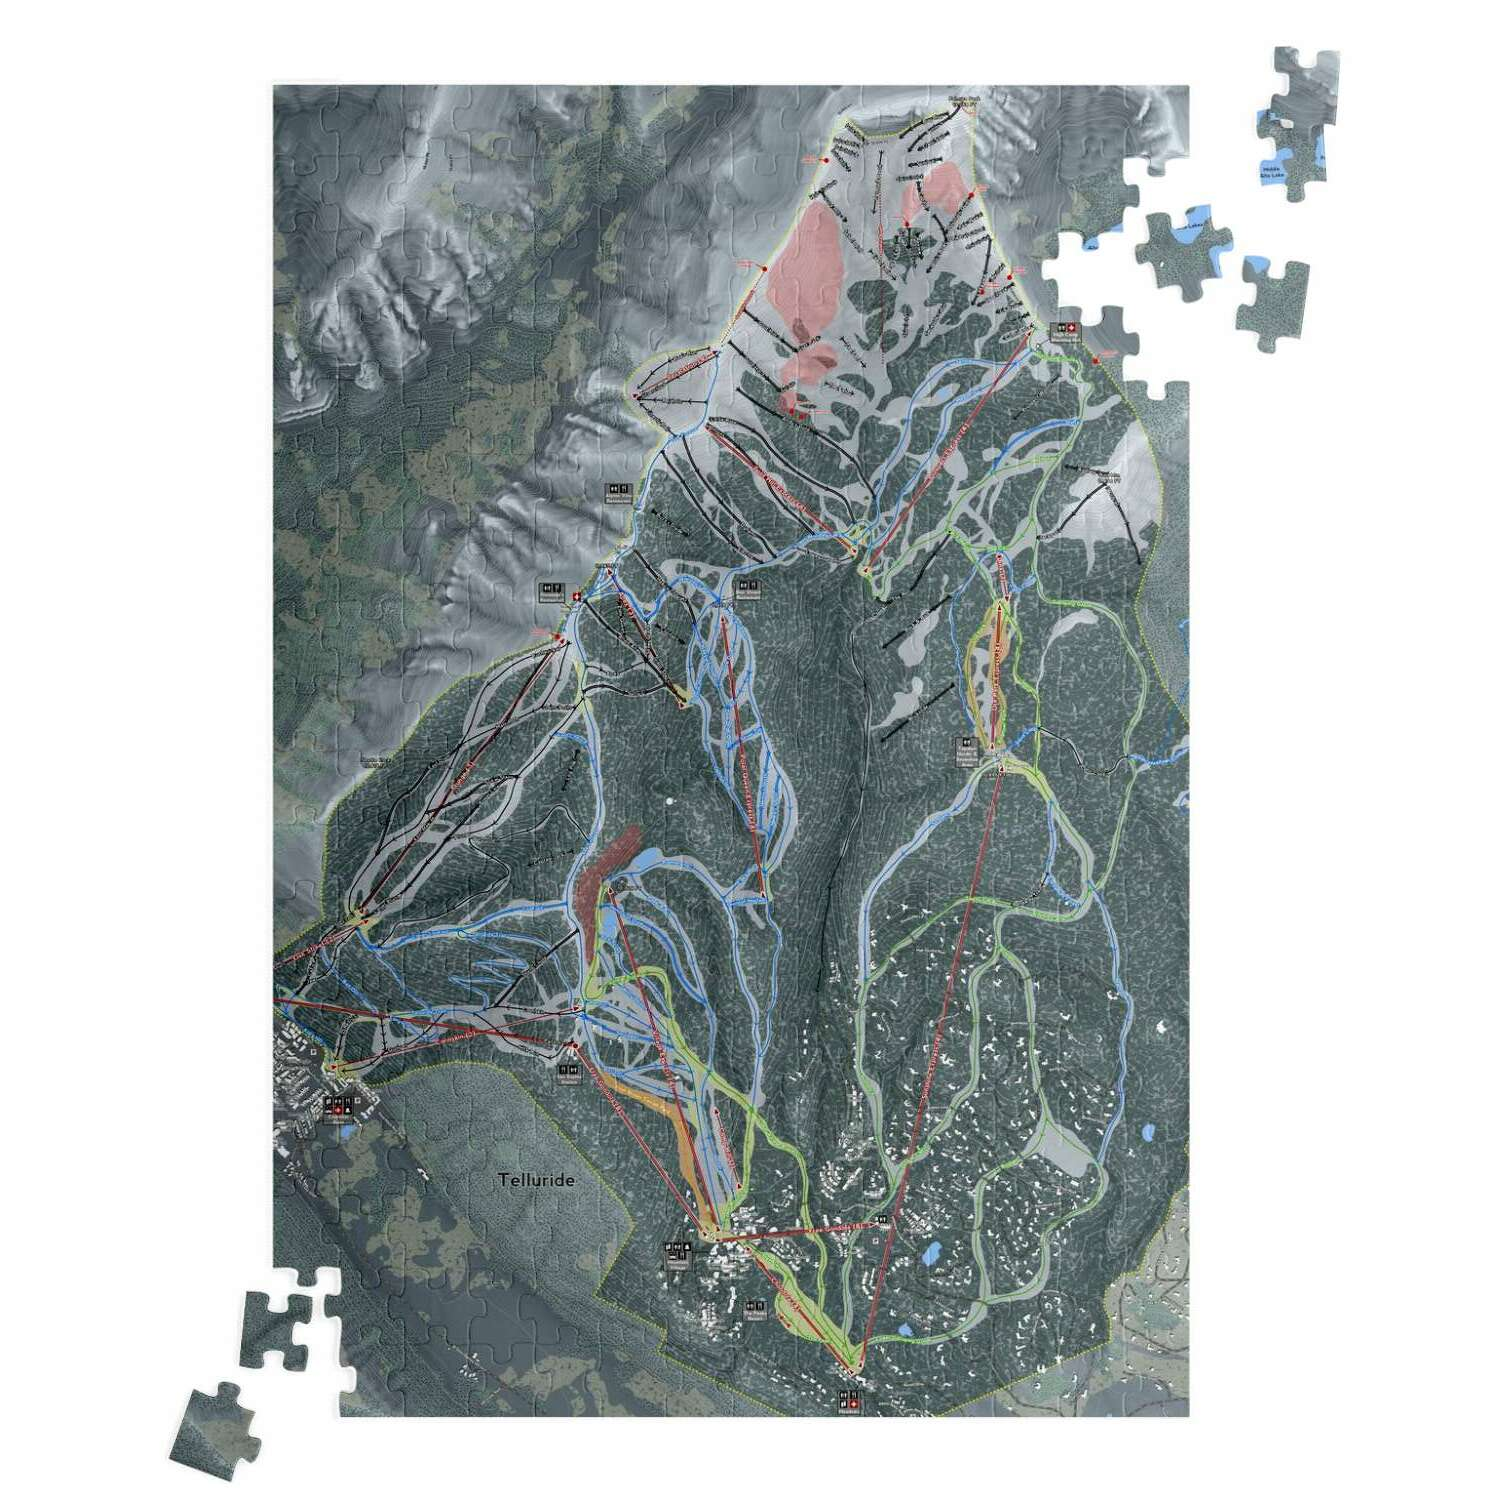 Telluride, Colorado Ski Resort Map Puzzle